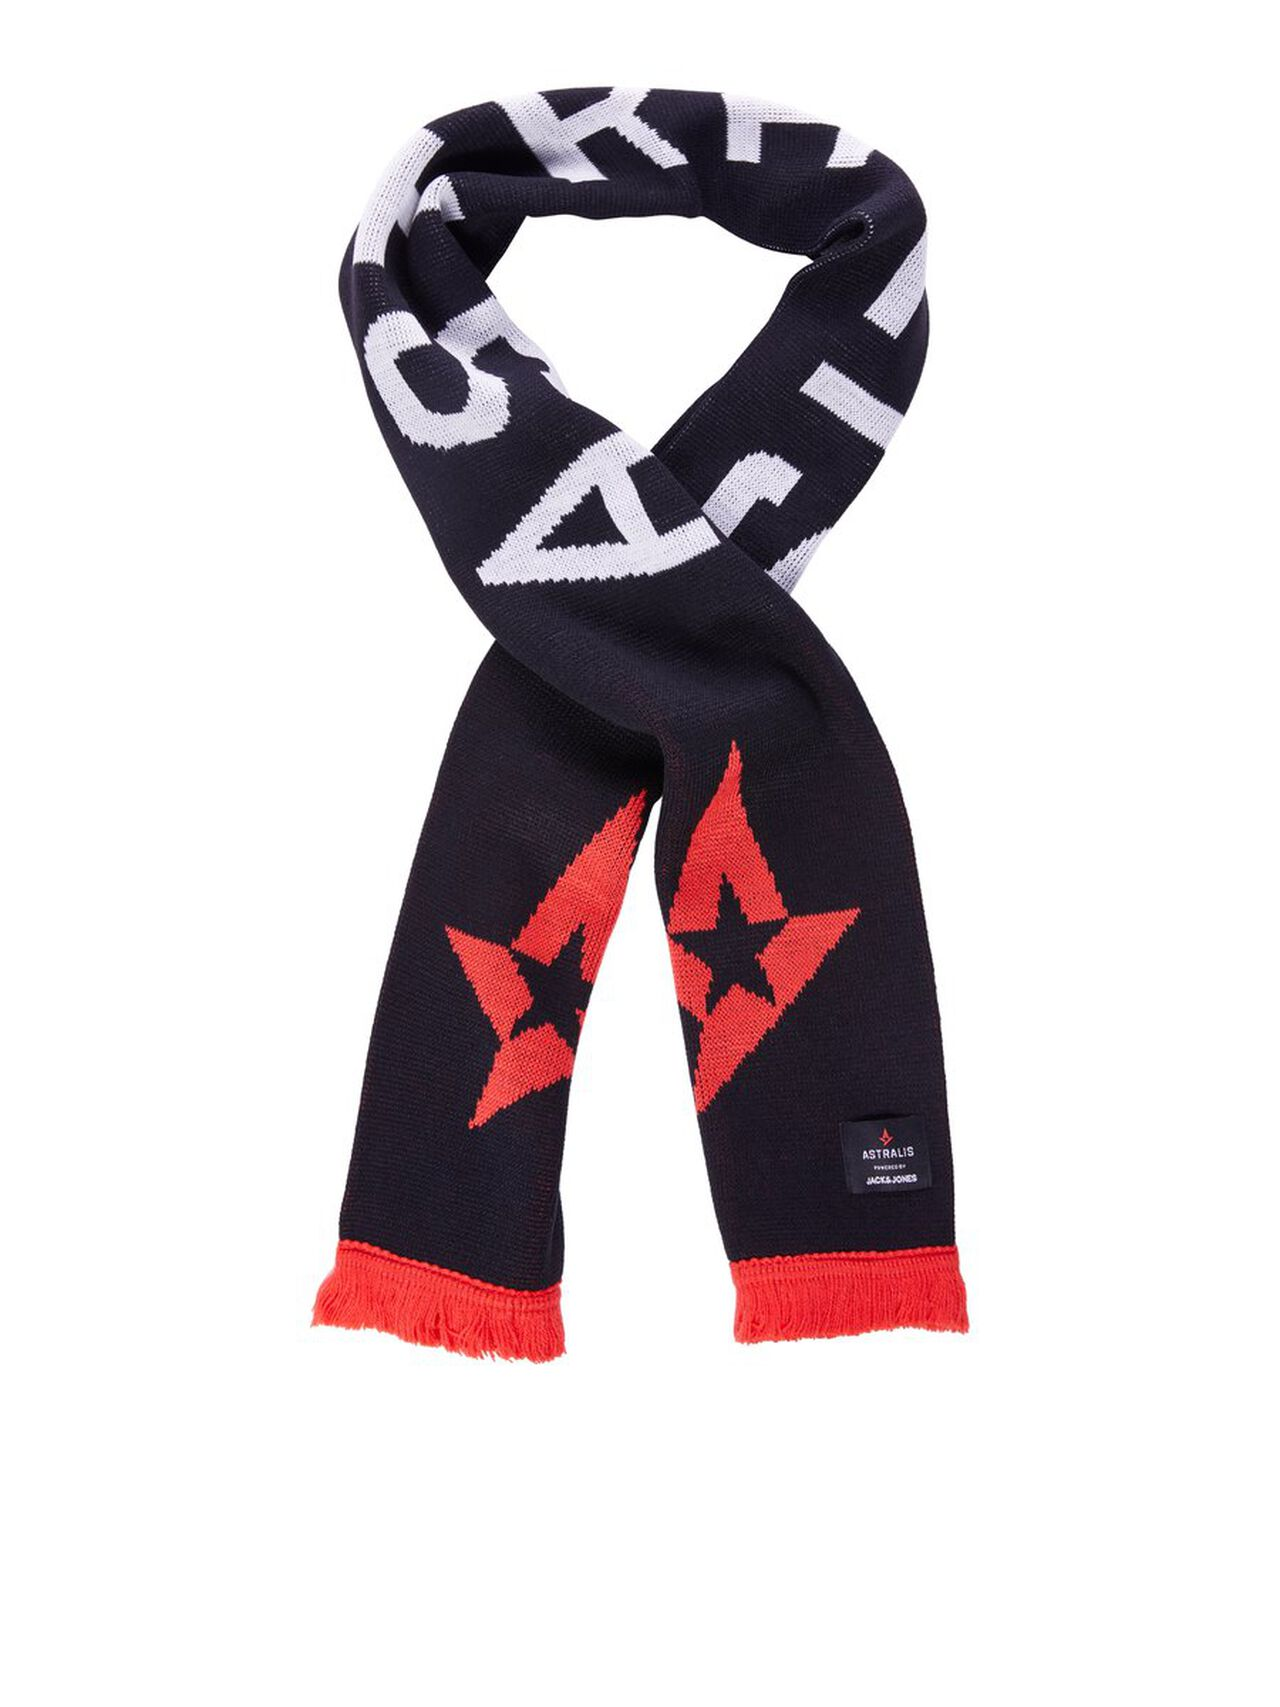 Astralis Scarf